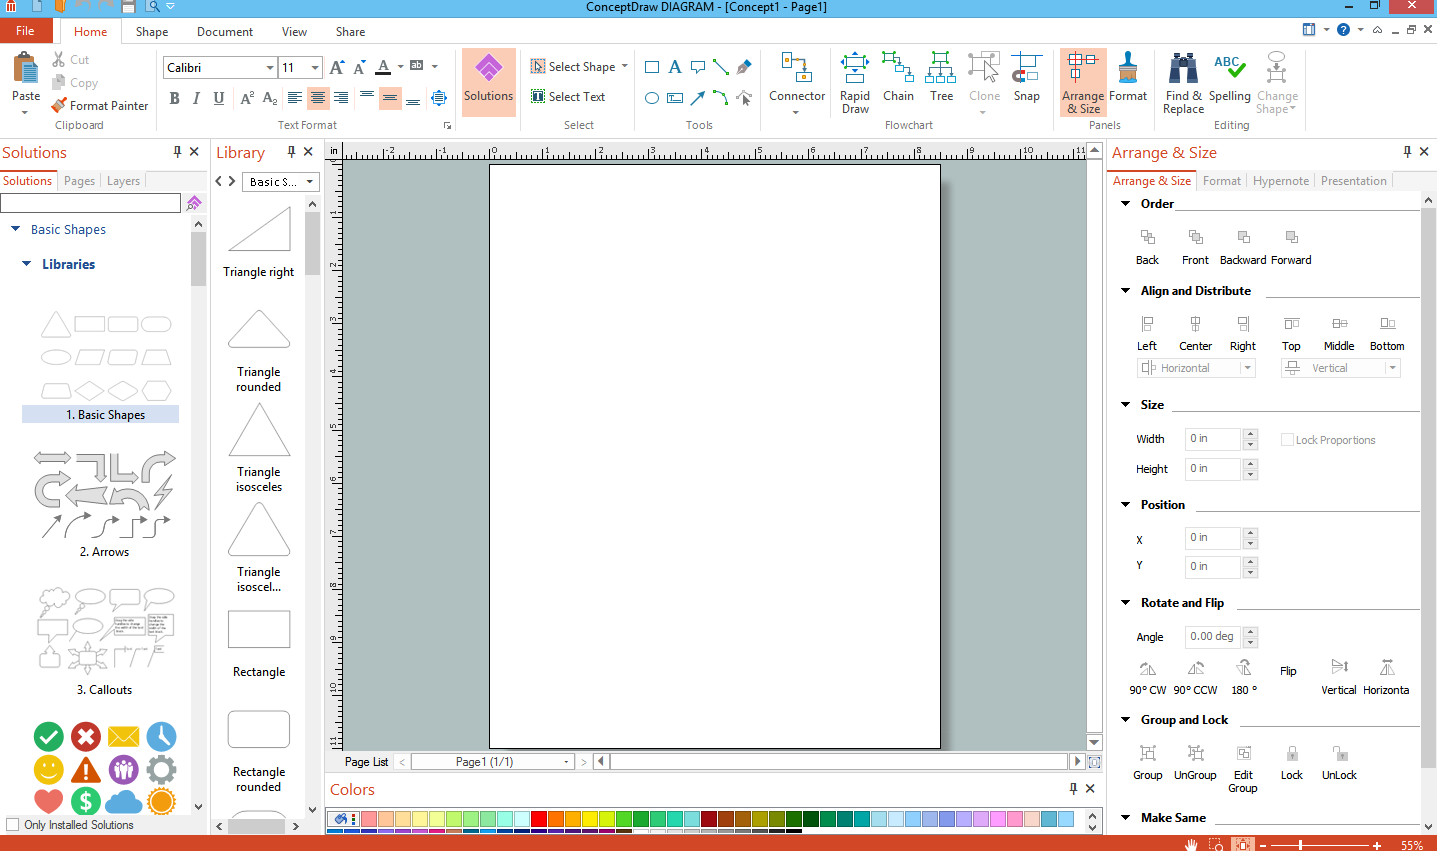 ConceptDraw Diagram main interface